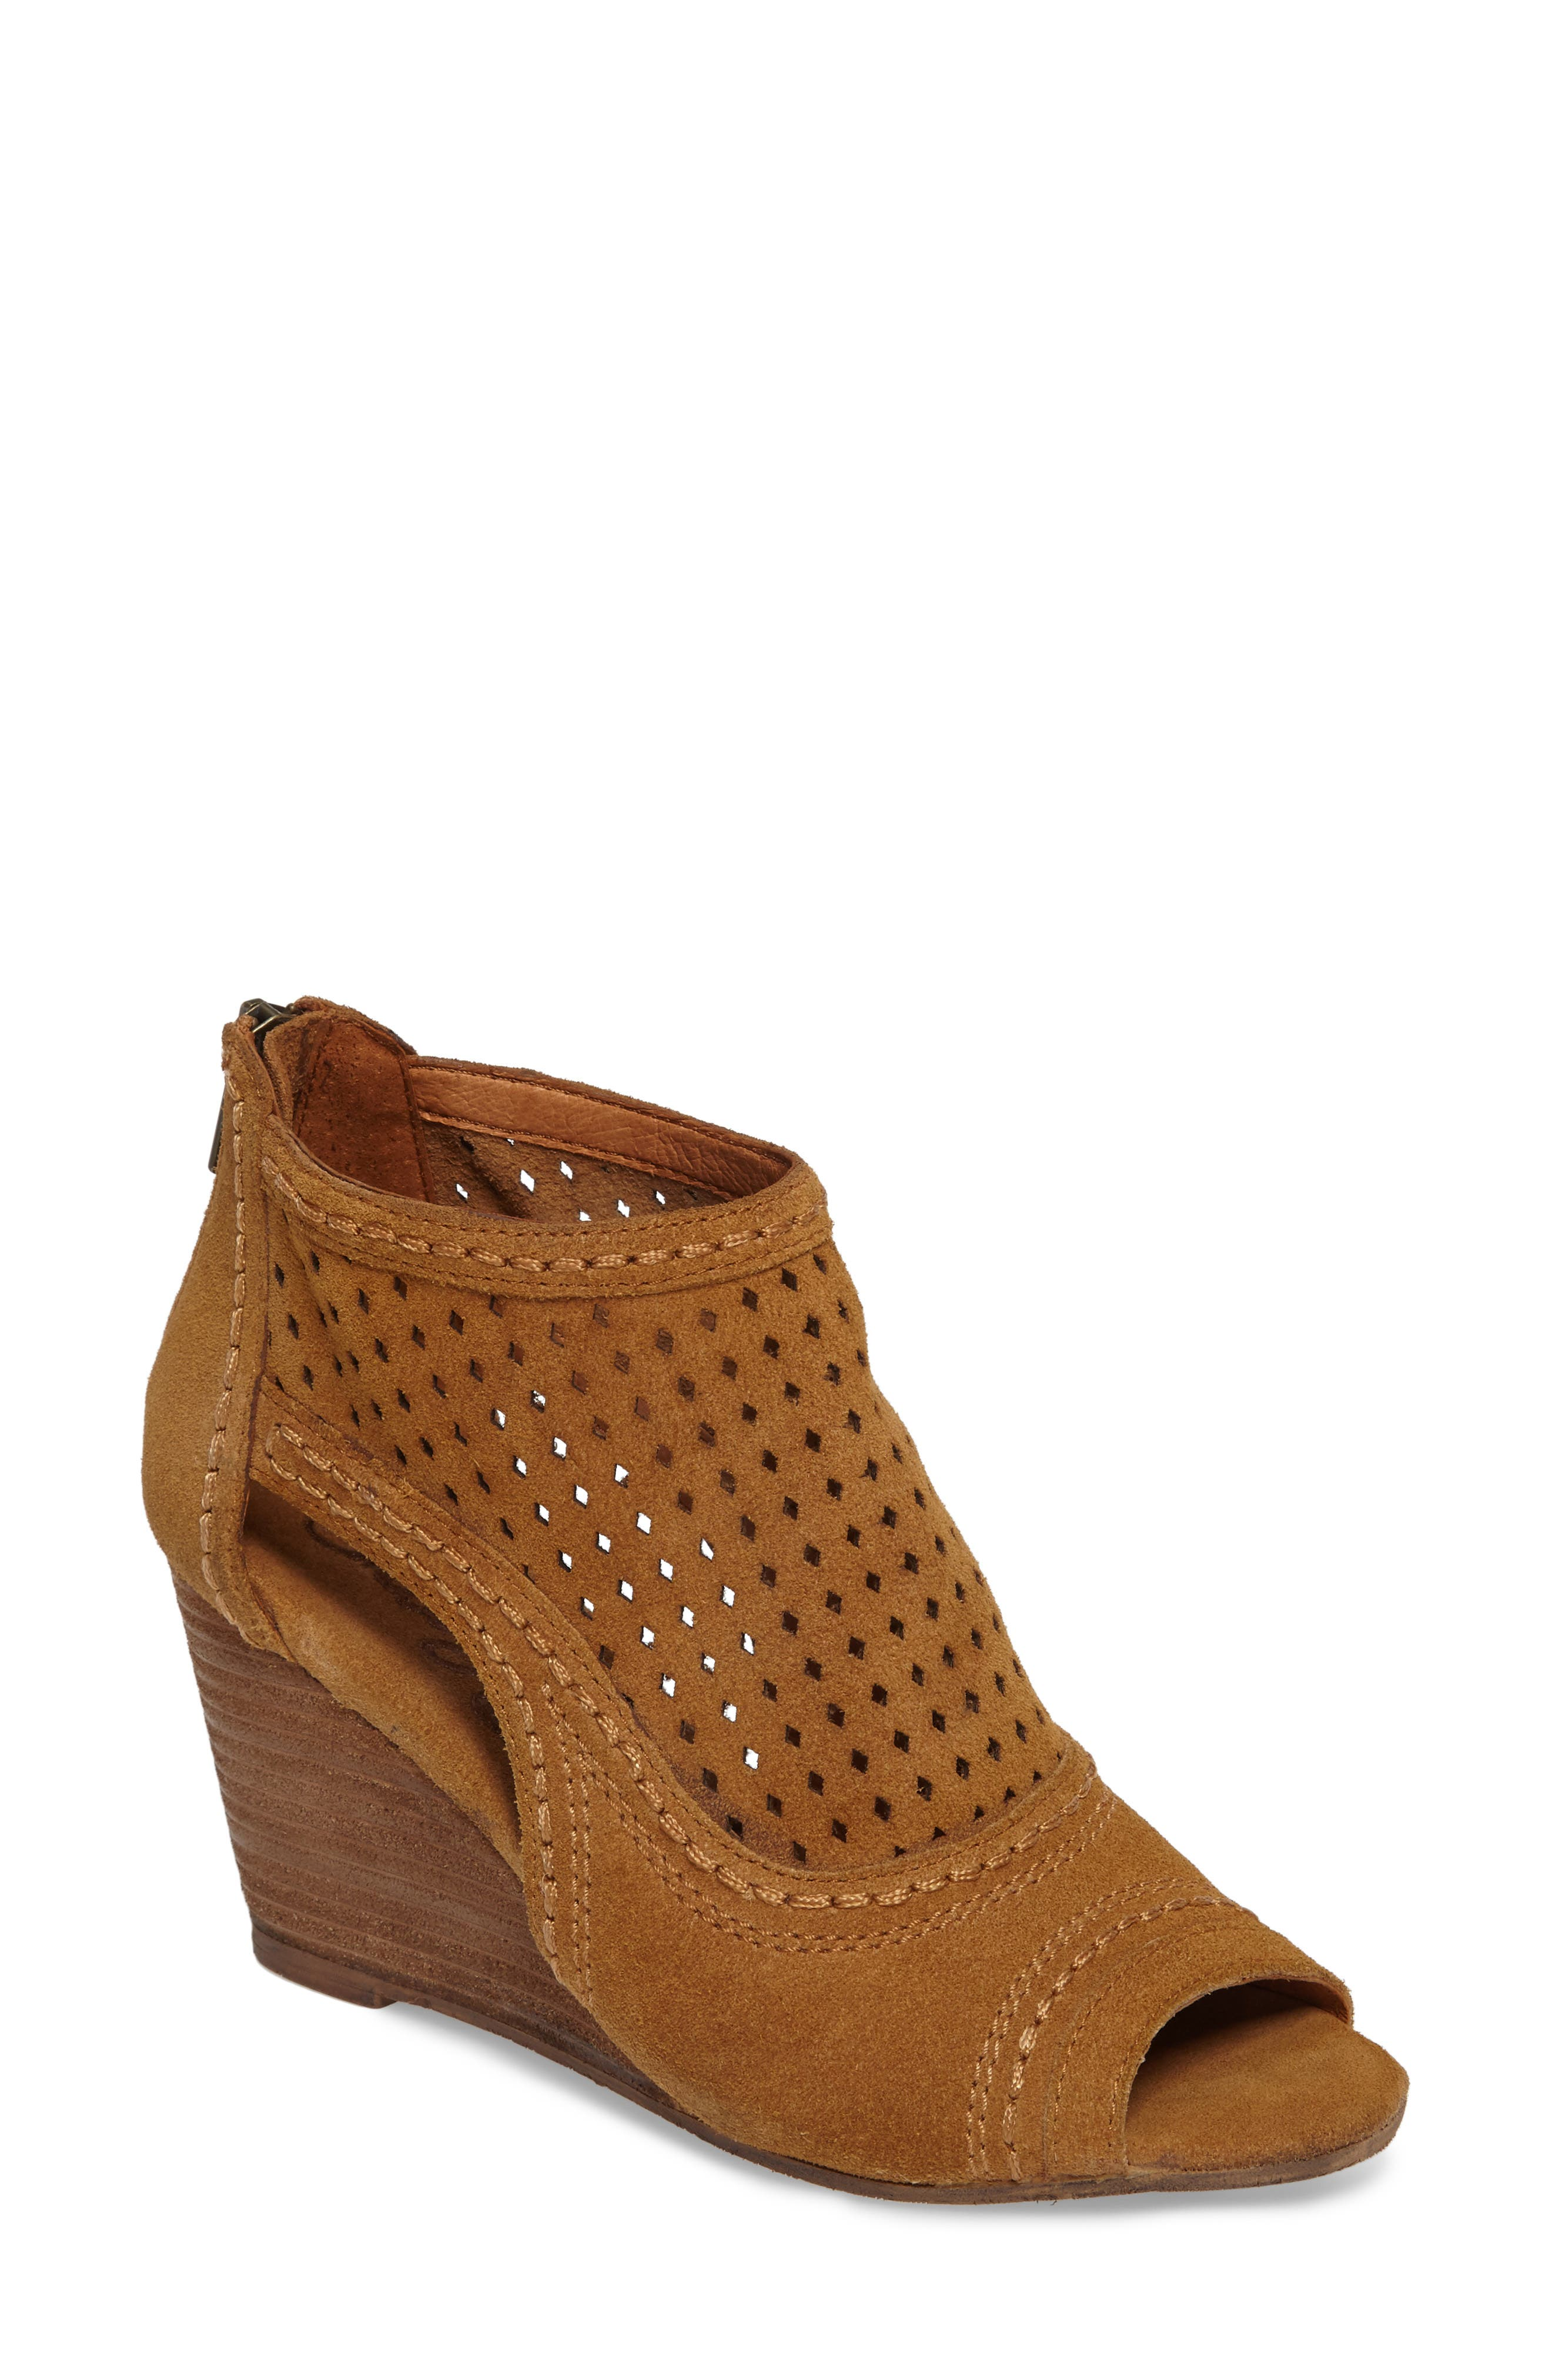 Sharon Perforated Wedge Sandal,                         Main,                         color, 249